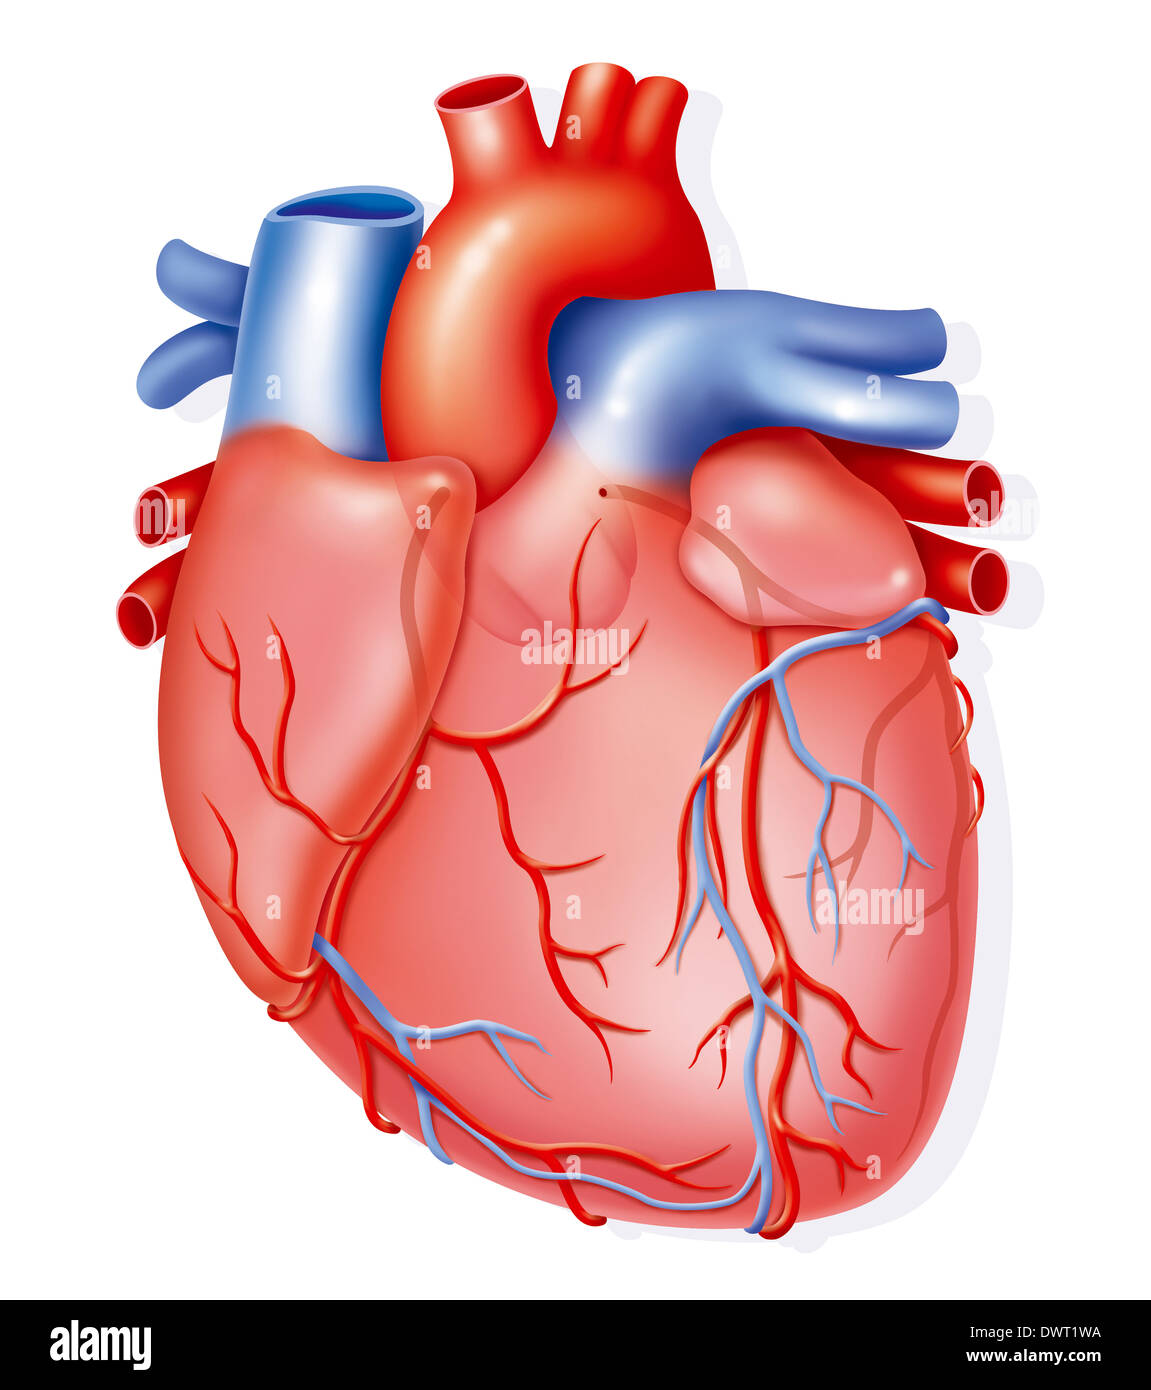 Heart, illustration - Stock Image